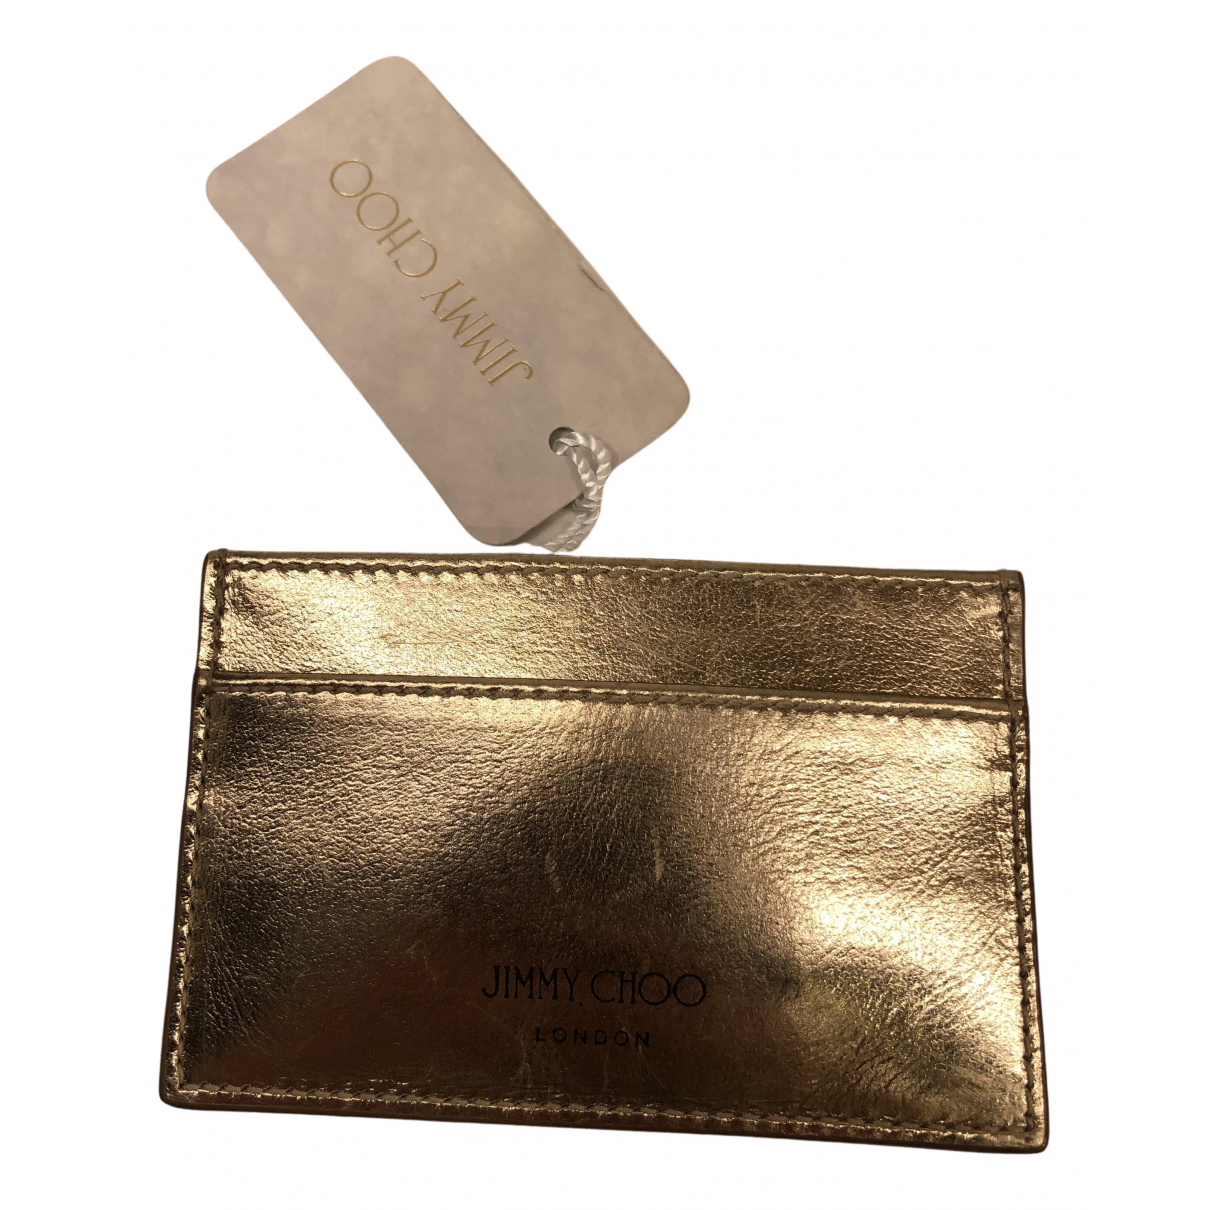 Jimmy Choo N Gold Leather Purses, wallet & cases for Women N